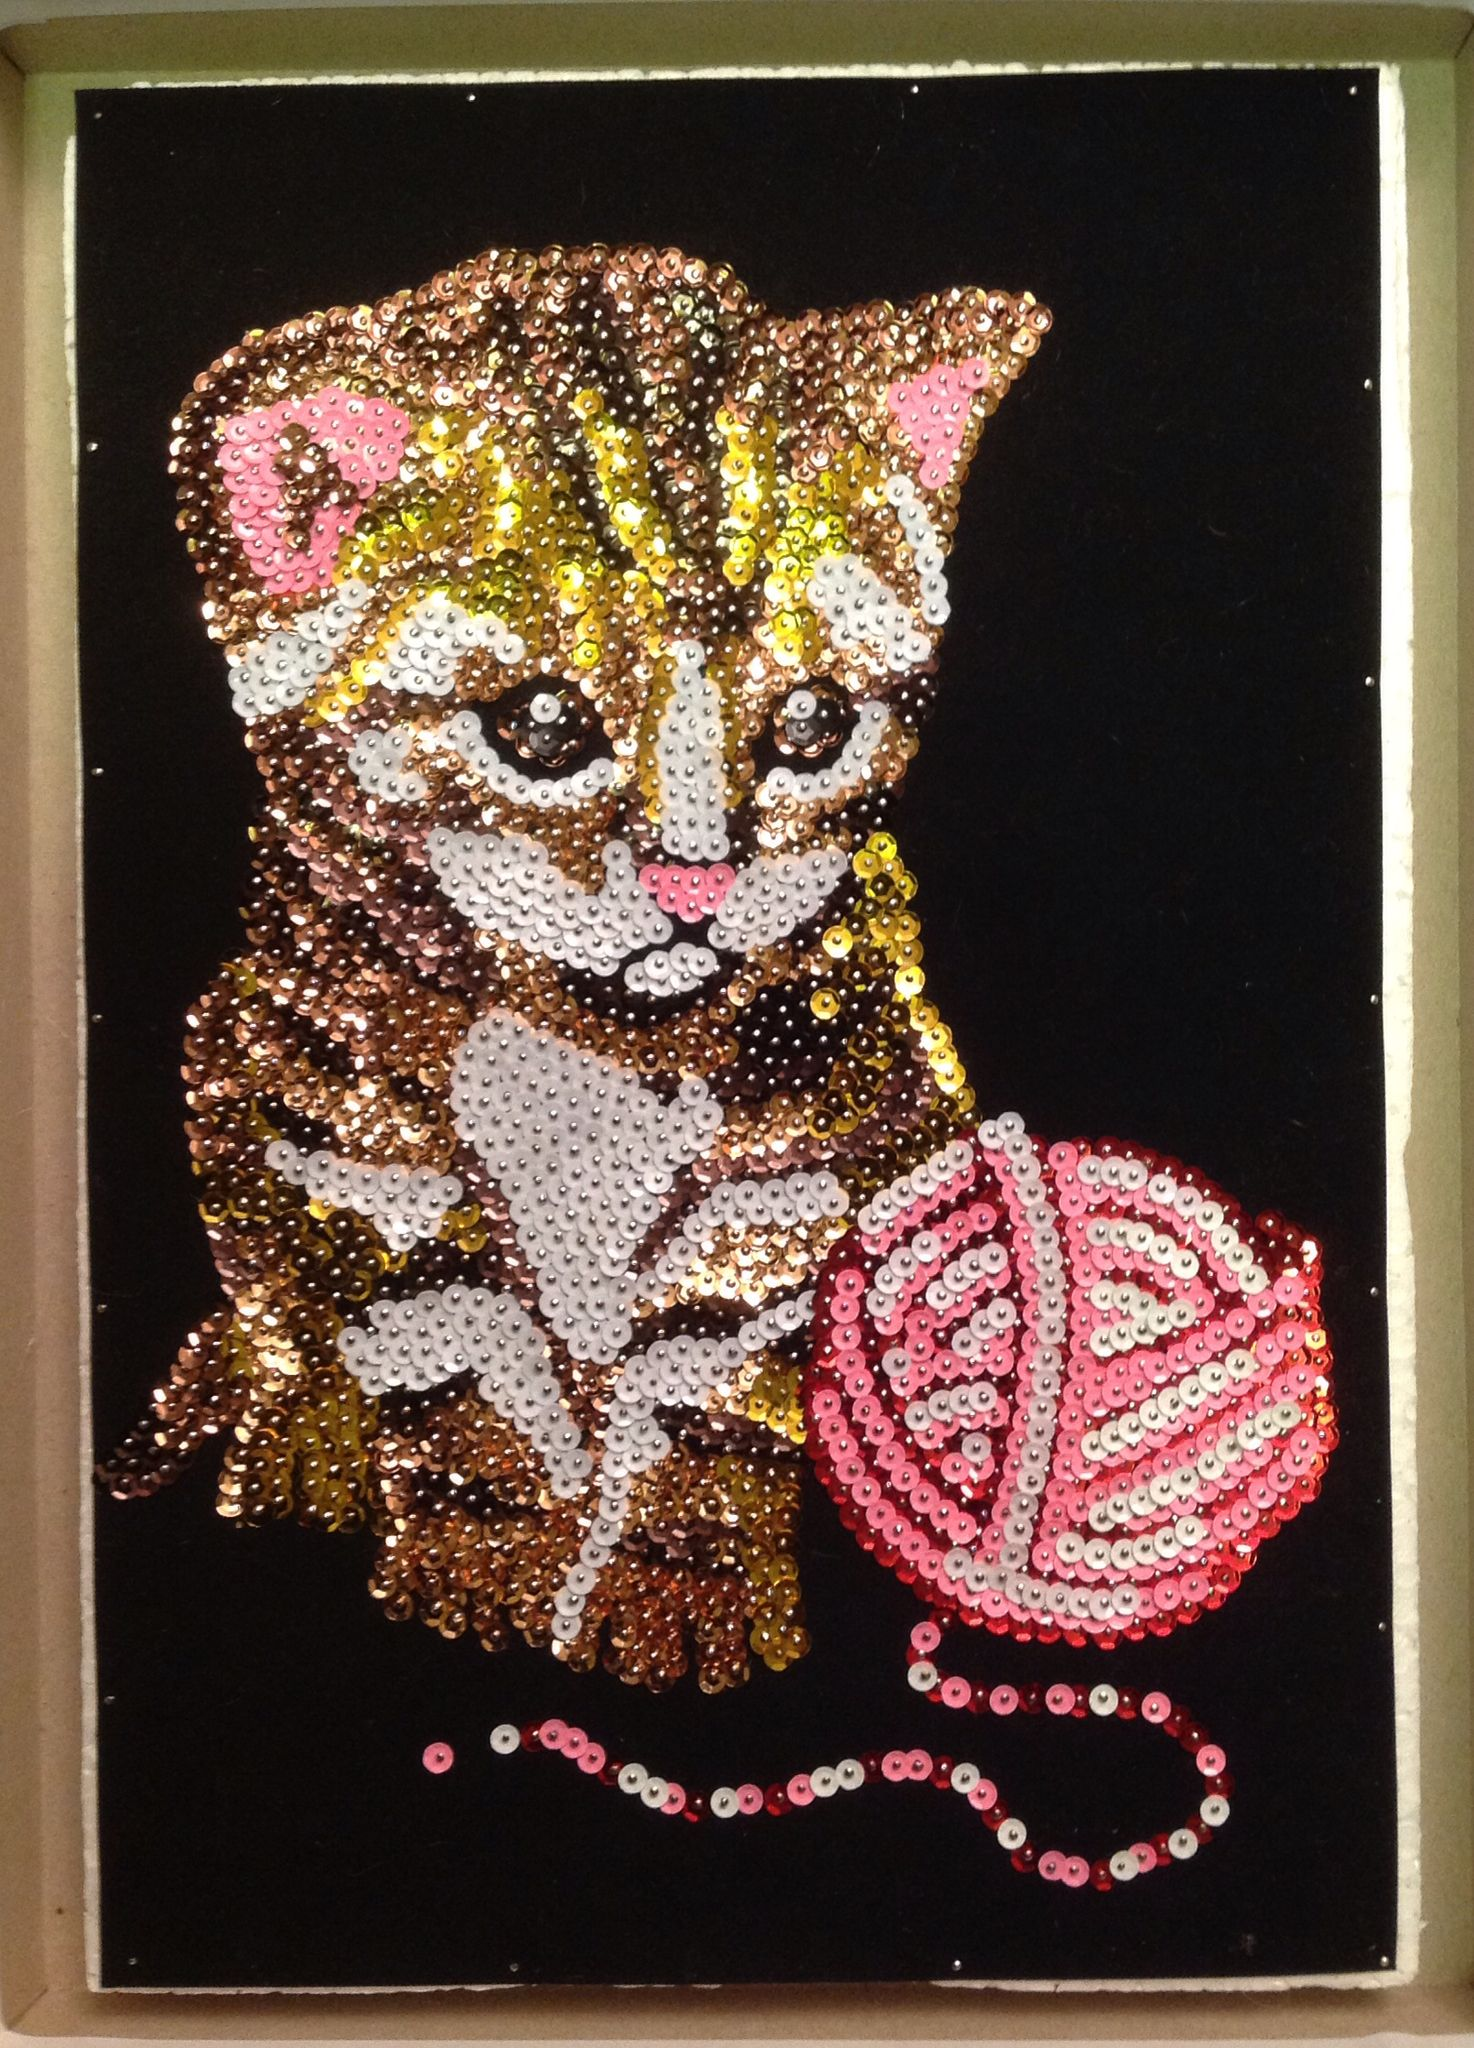 Sequin art kitten with wool tableau avec des paillettes for Tableau en sequin